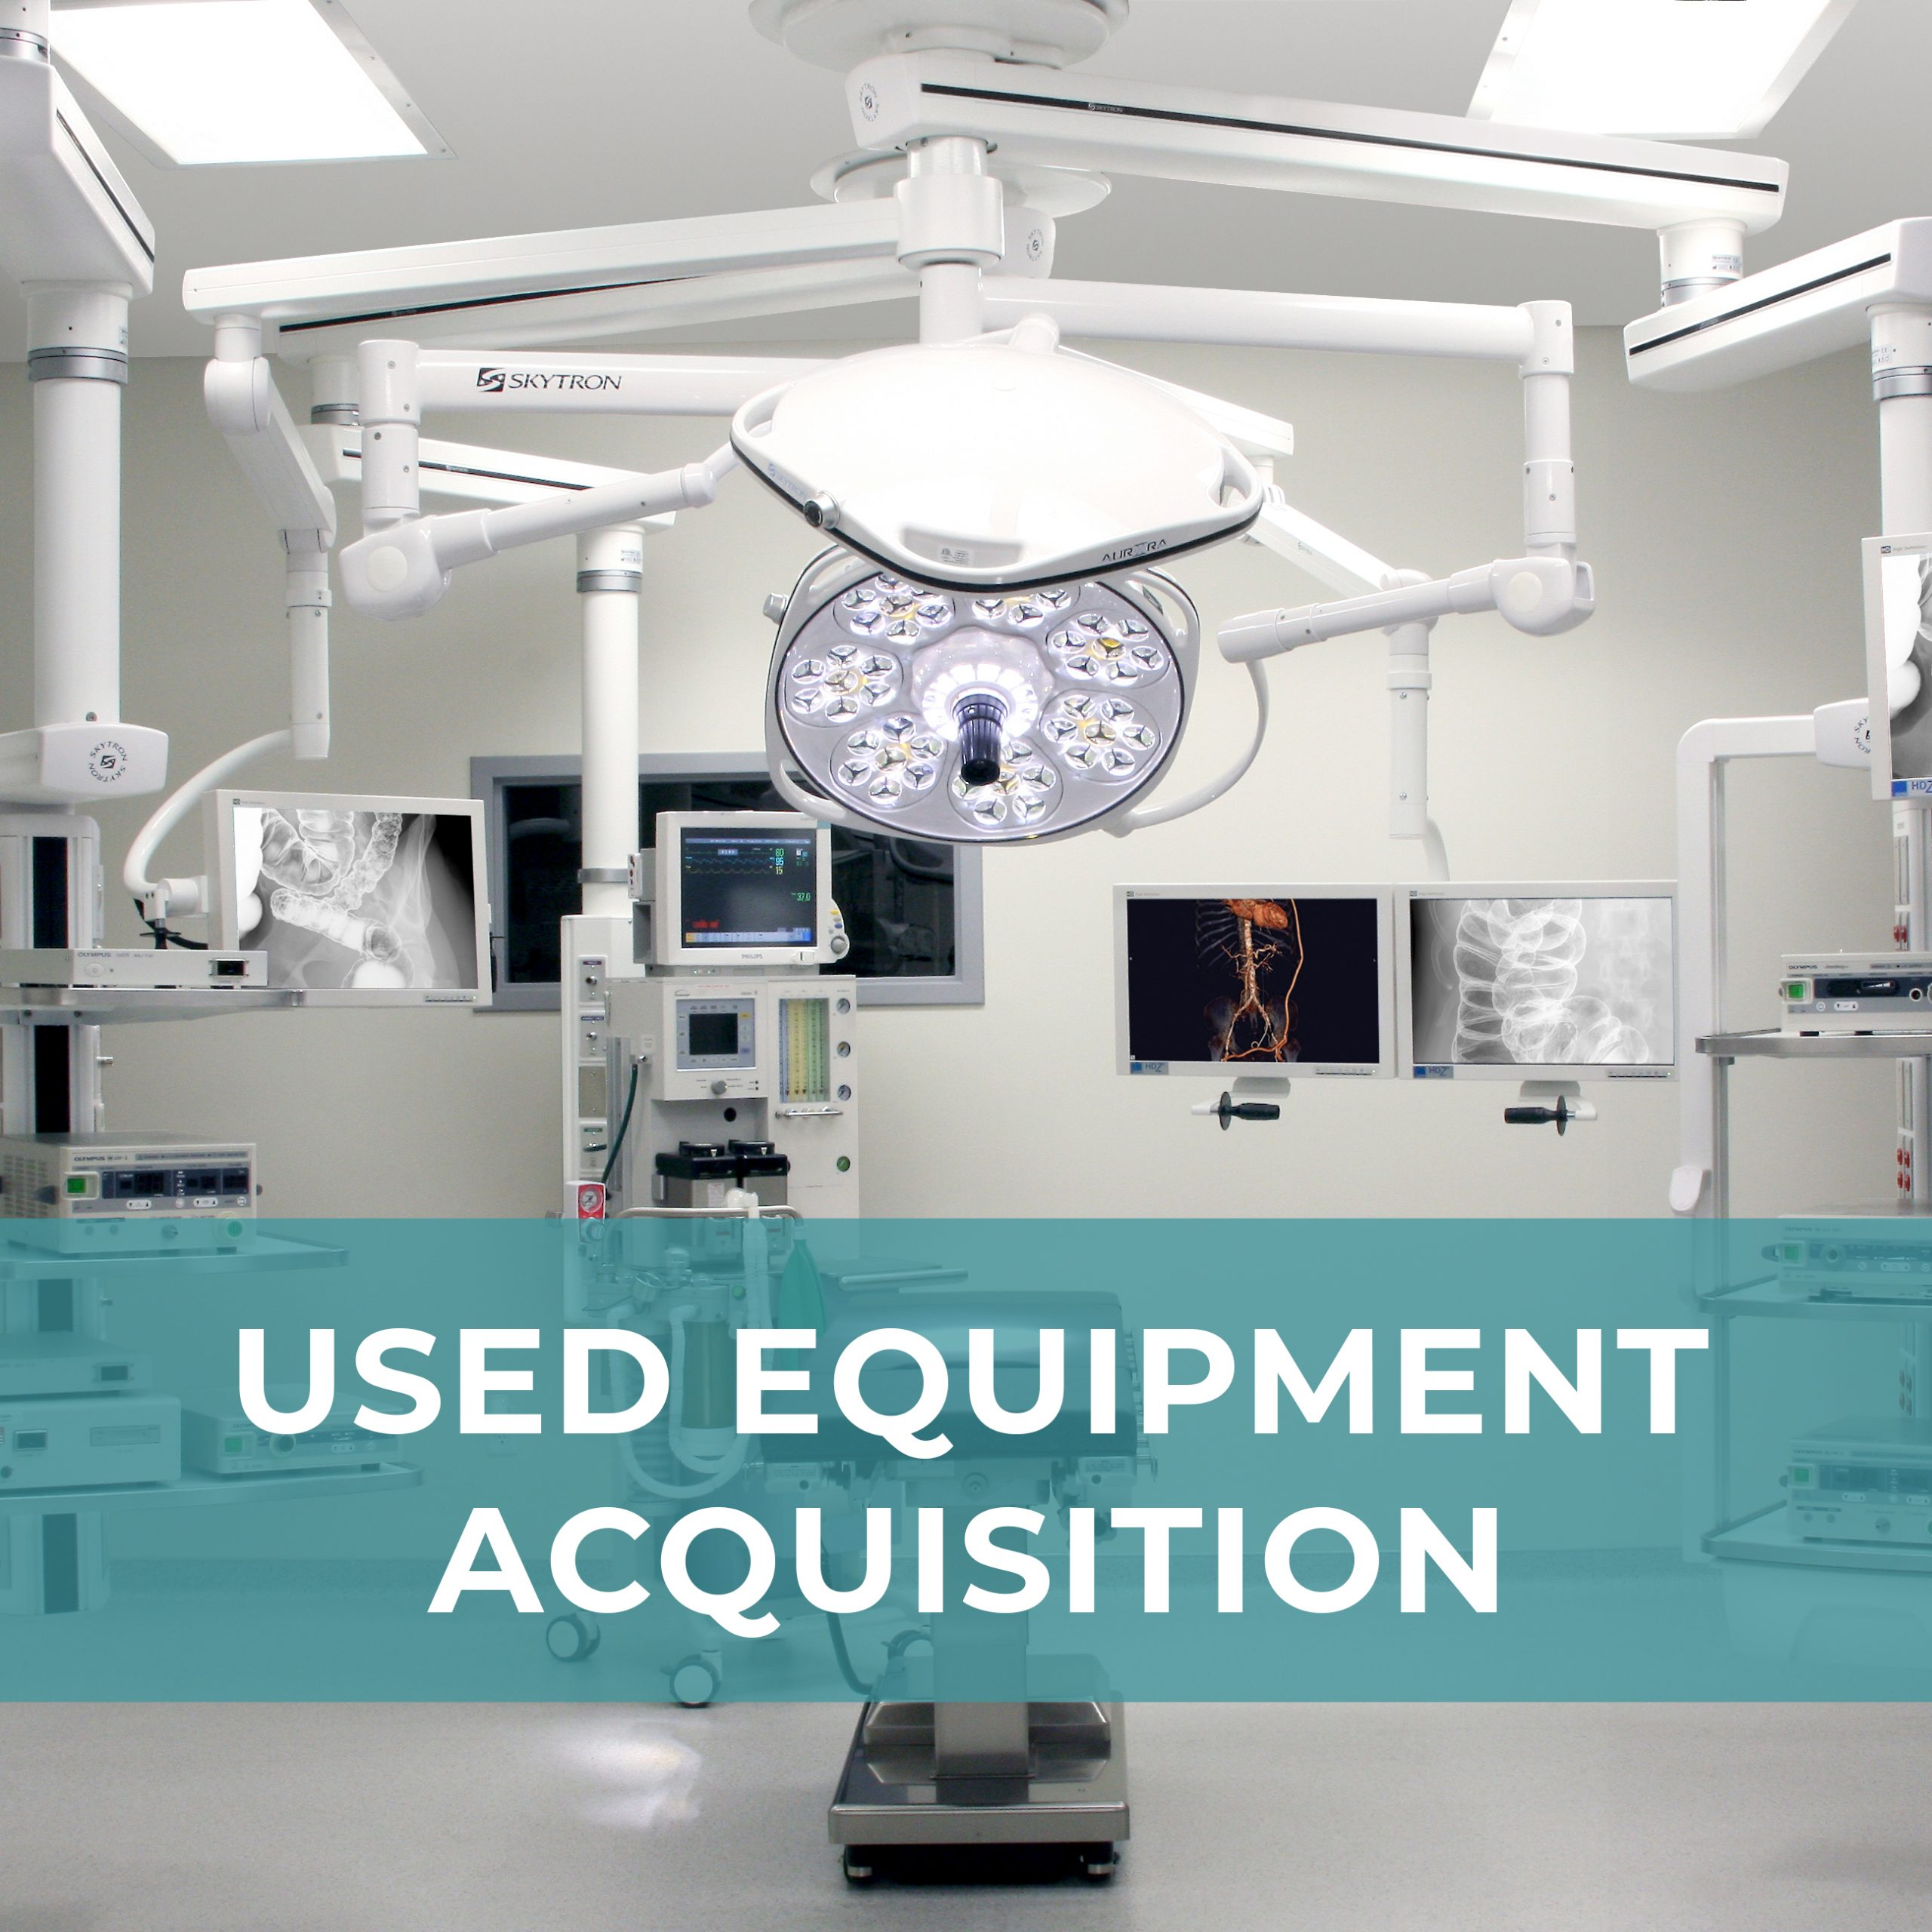 Used Equipment Acquisition